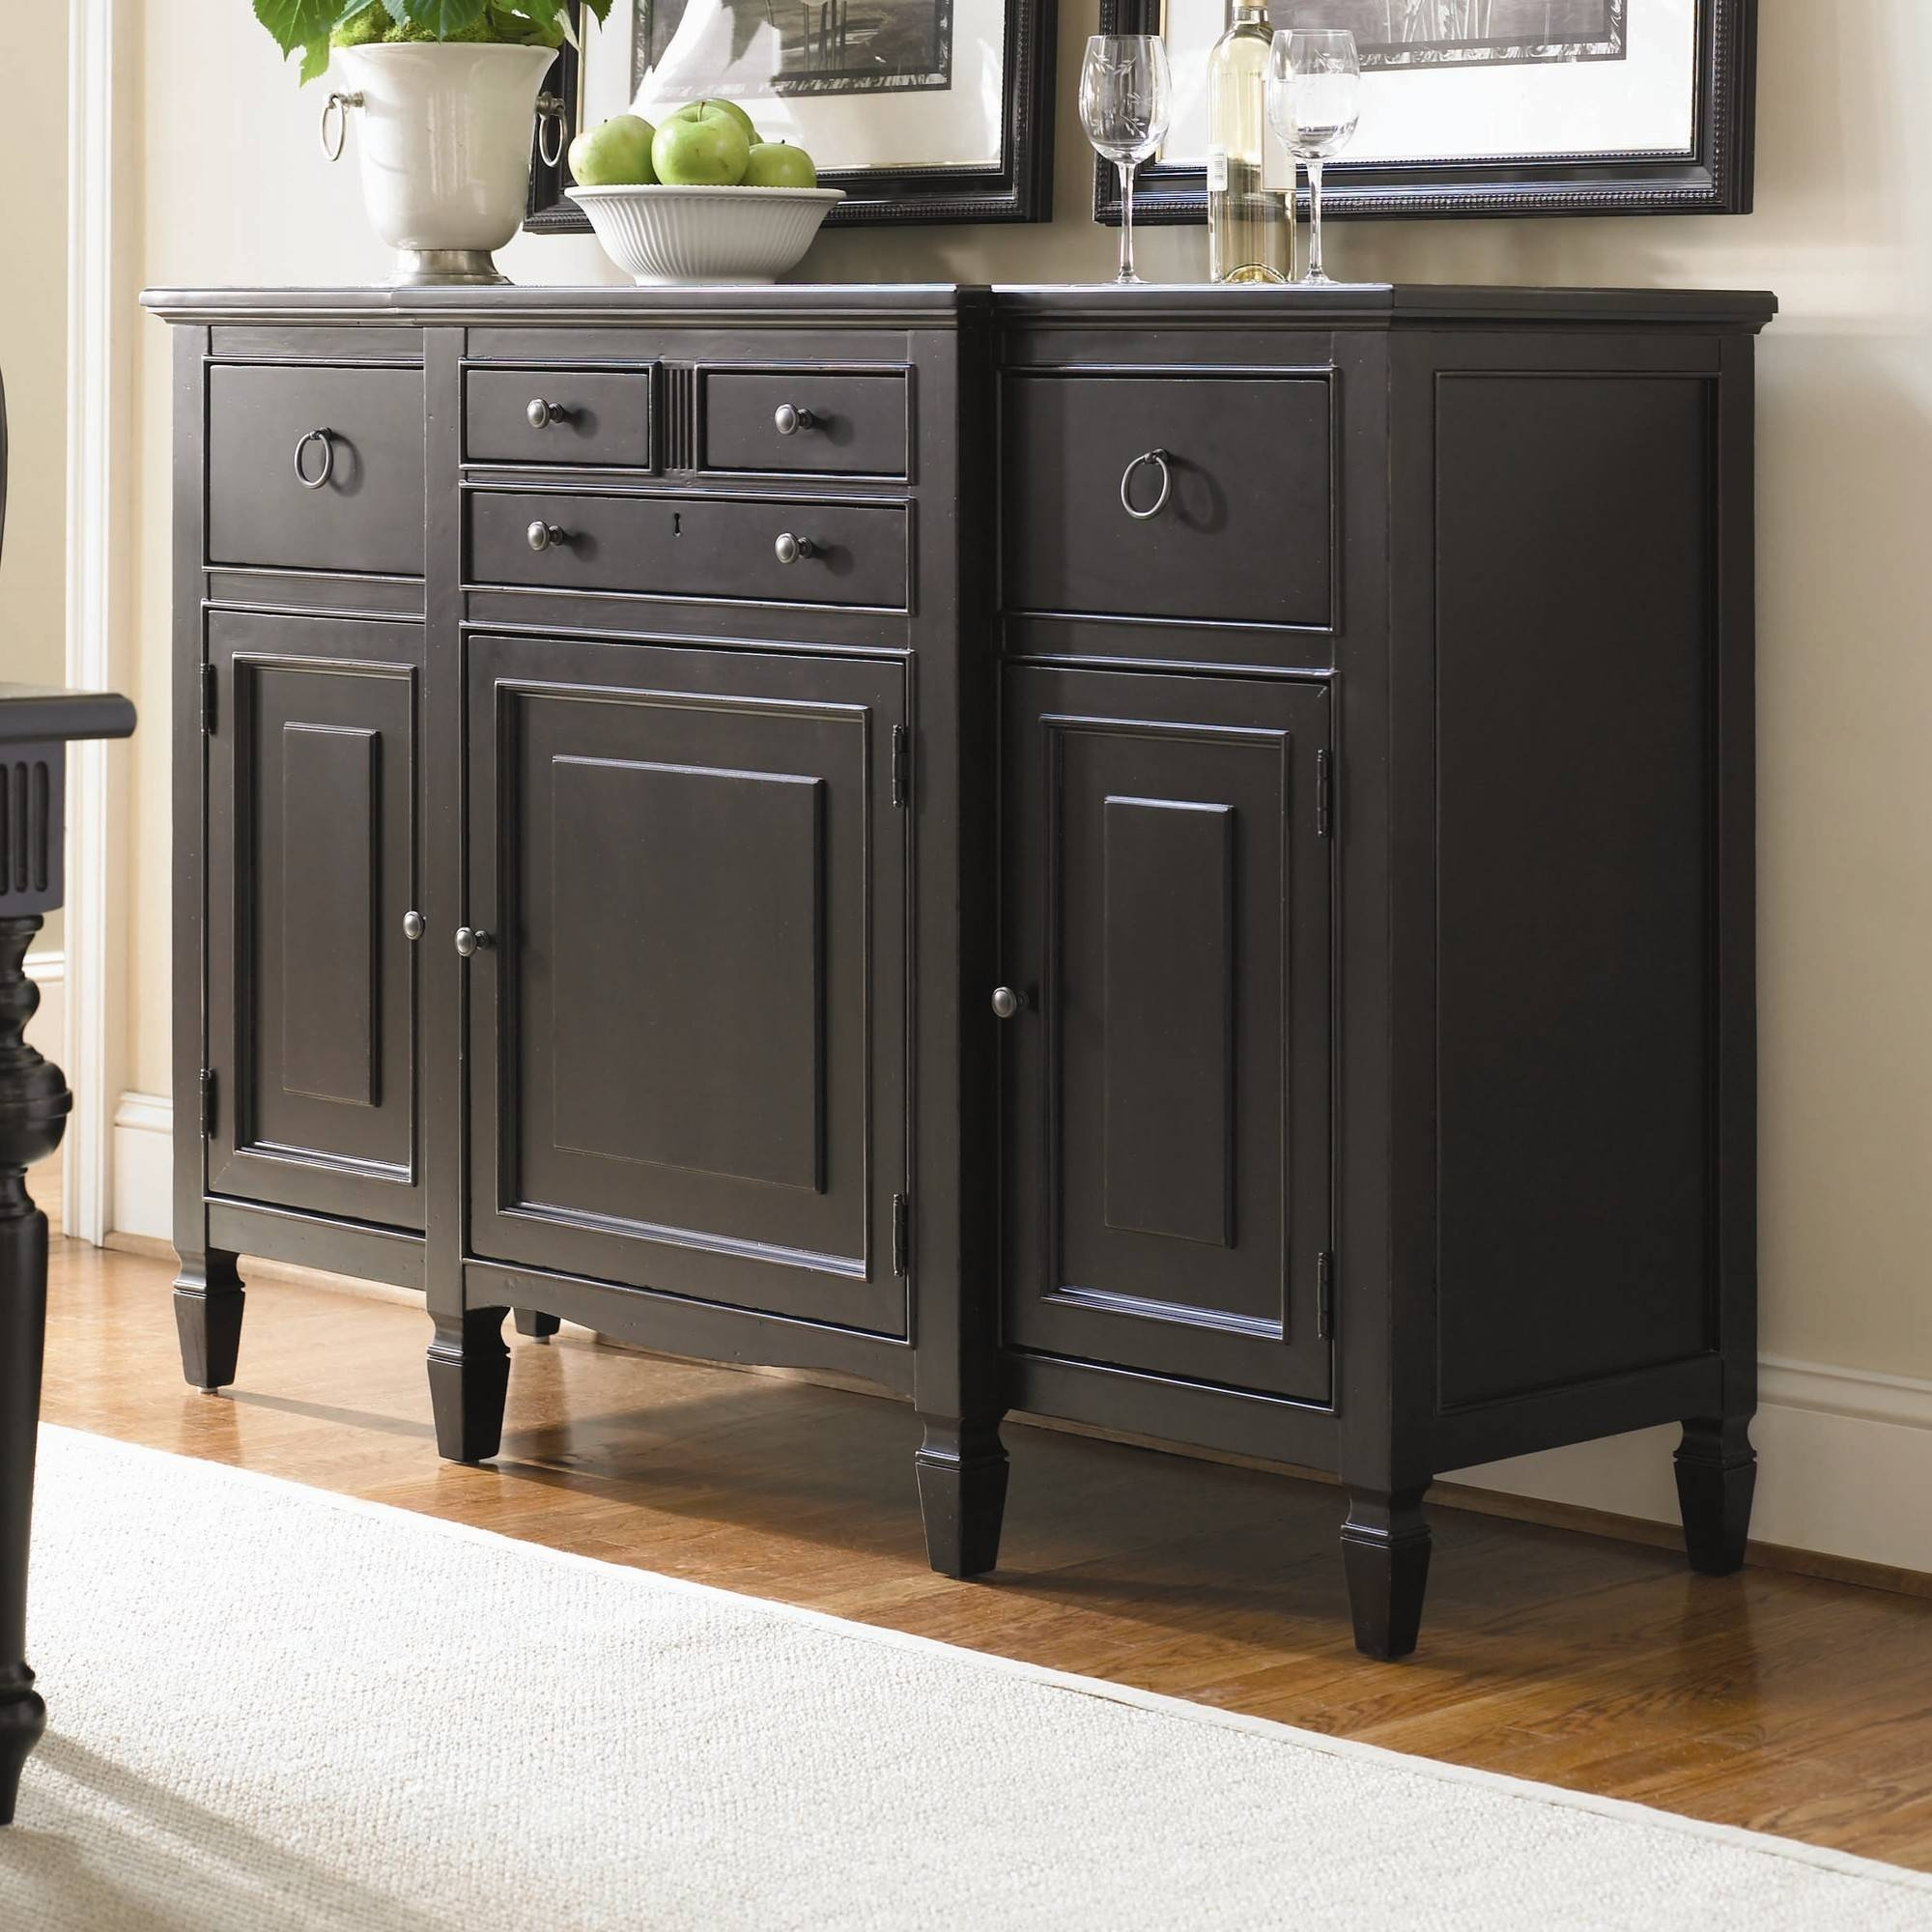 Furniture: White Sideboard Buffet With Unique Black Table Lamp And Regarding Most Popular Sideboard Buffet Tables (#8 of 15)